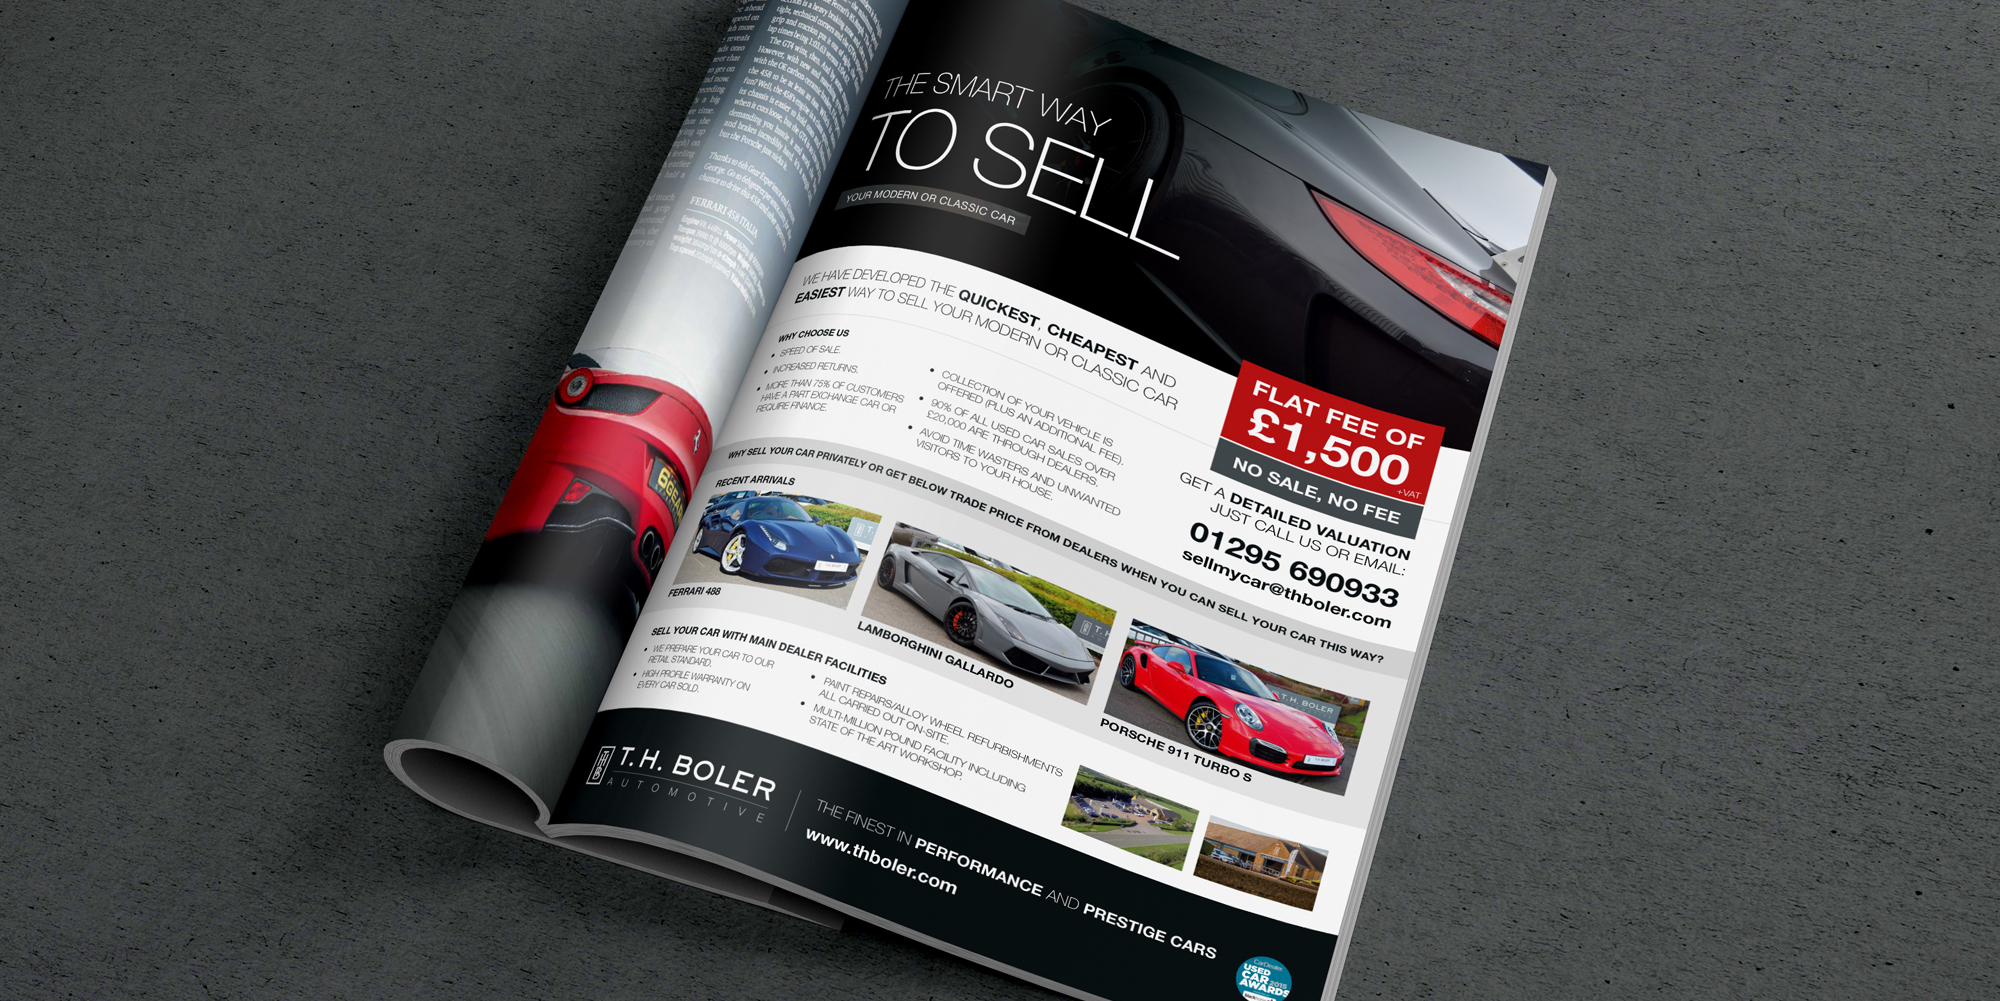 Luxury Car Dealership Branding Materials Adverts